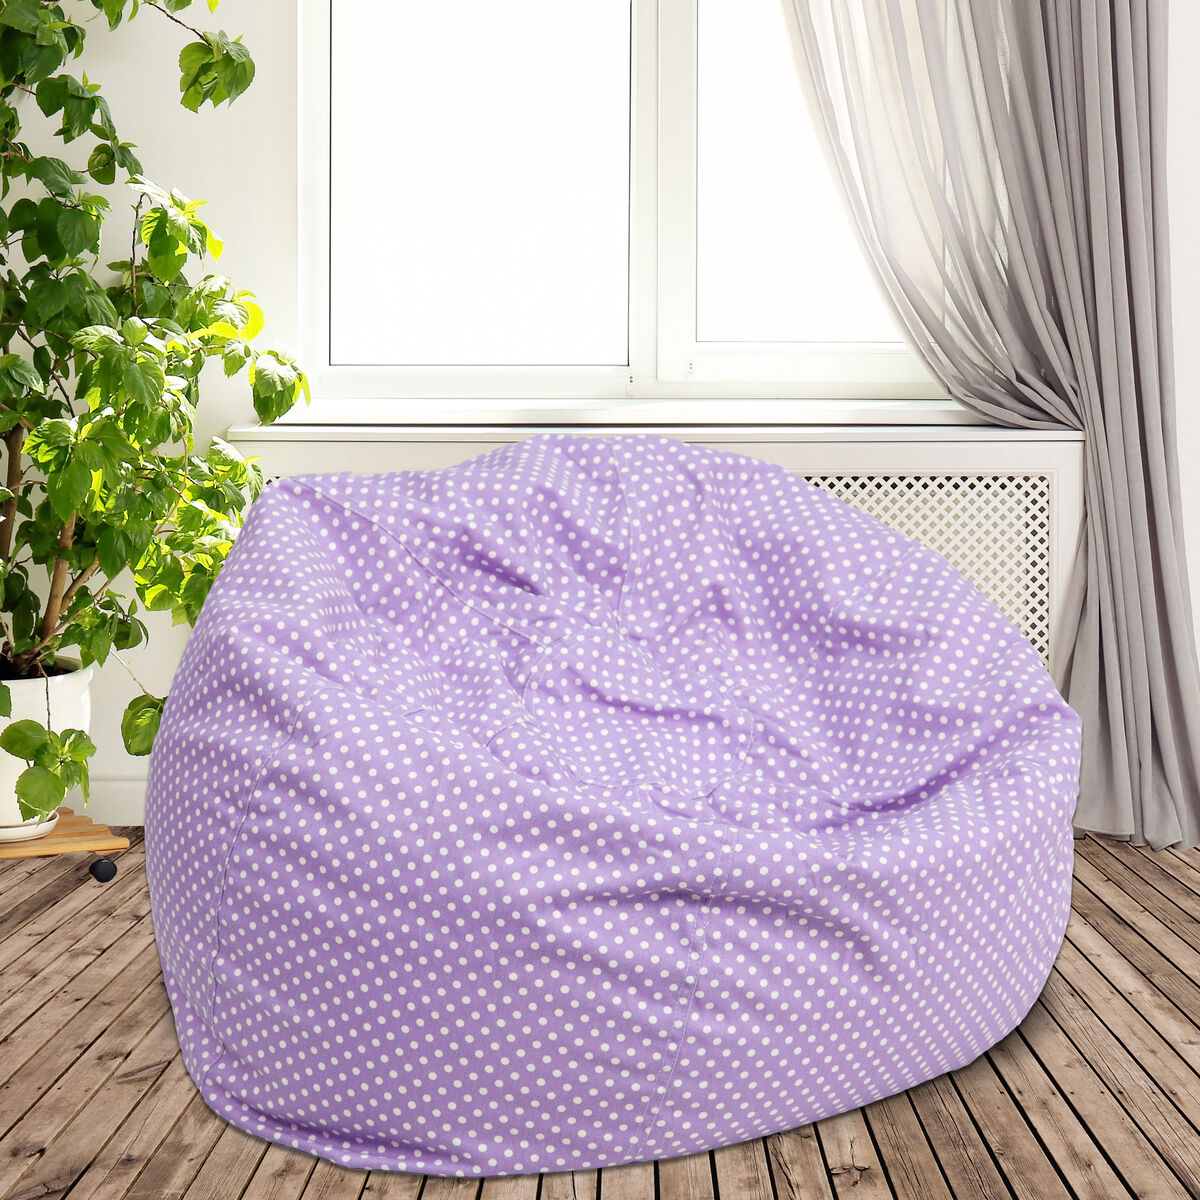 Phenomenal Oversized Lavender Dot Bean Bag Chair For Kids And Adults Machost Co Dining Chair Design Ideas Machostcouk